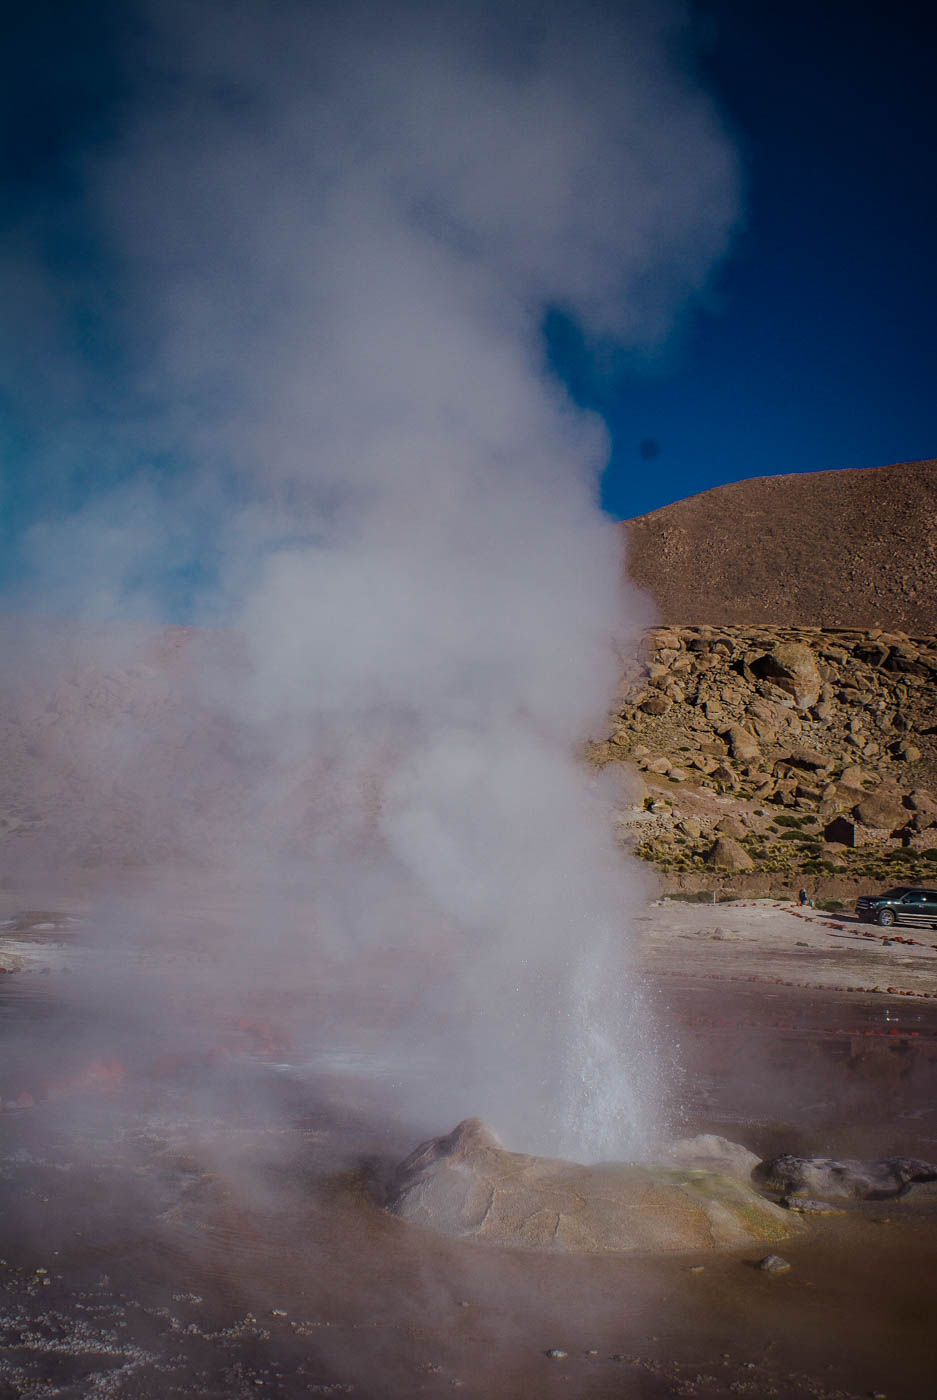 El Tatio Geysers South America Travel Bucket List. 90 Awesome Things to do in South America When Backpacking and Travelling #southamerica #bucketlist #traveldestinations